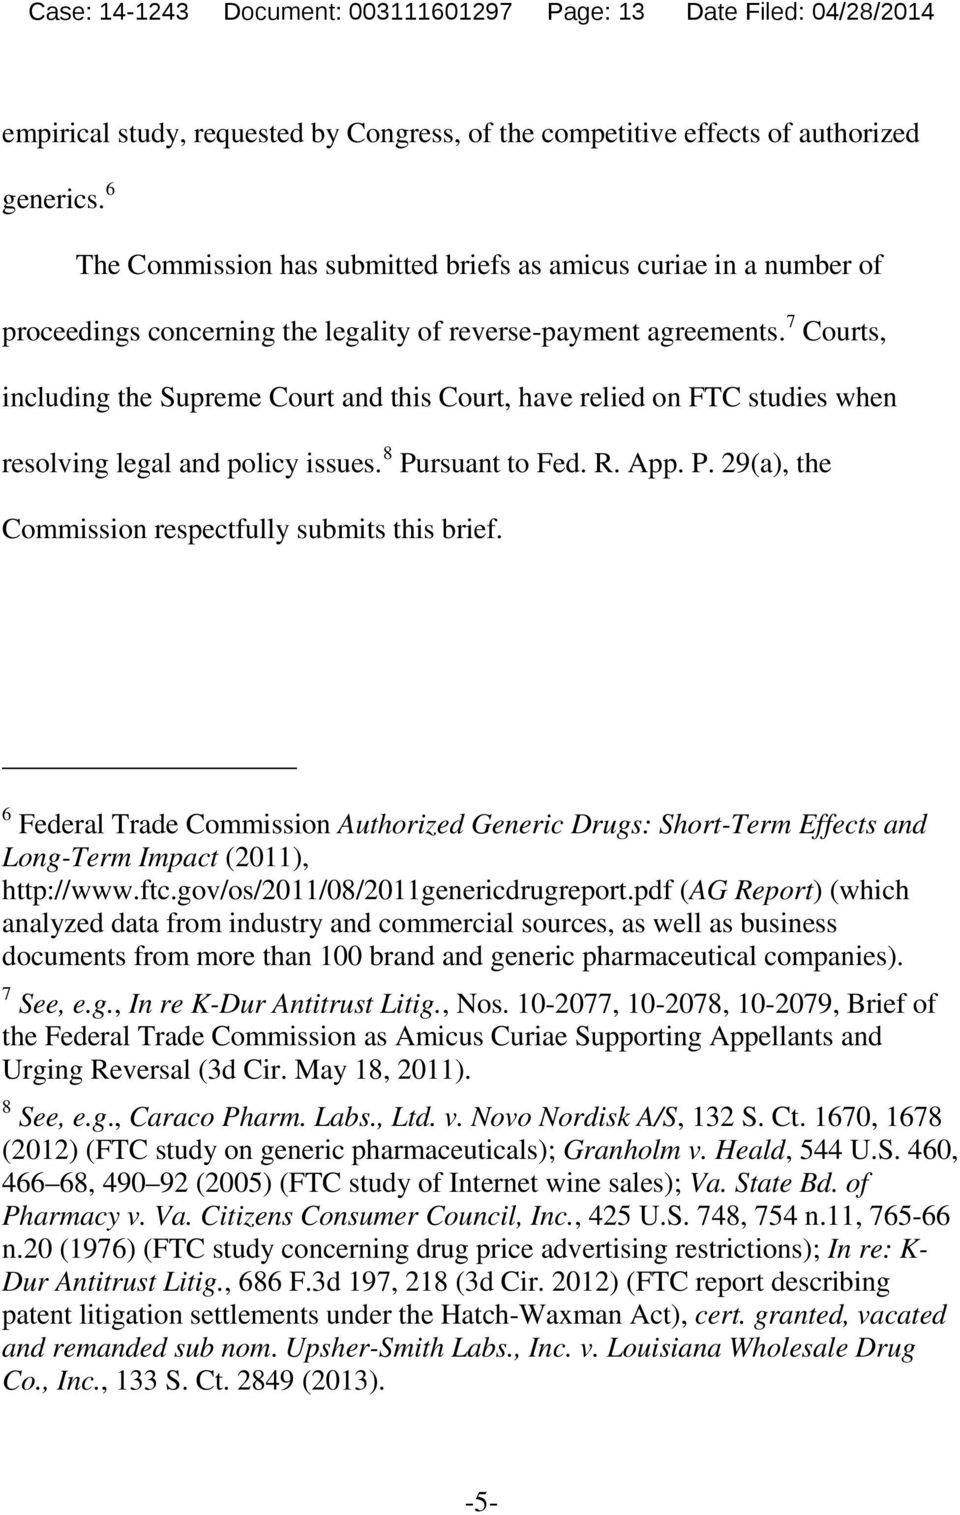 7 Courts, including the Supreme Court and this Court, have relied on FTC studies when resolving legal and policy issues. 8 Pursuant to Fed. R. App. P. 29(a), the Commission respectfully submits this brief.